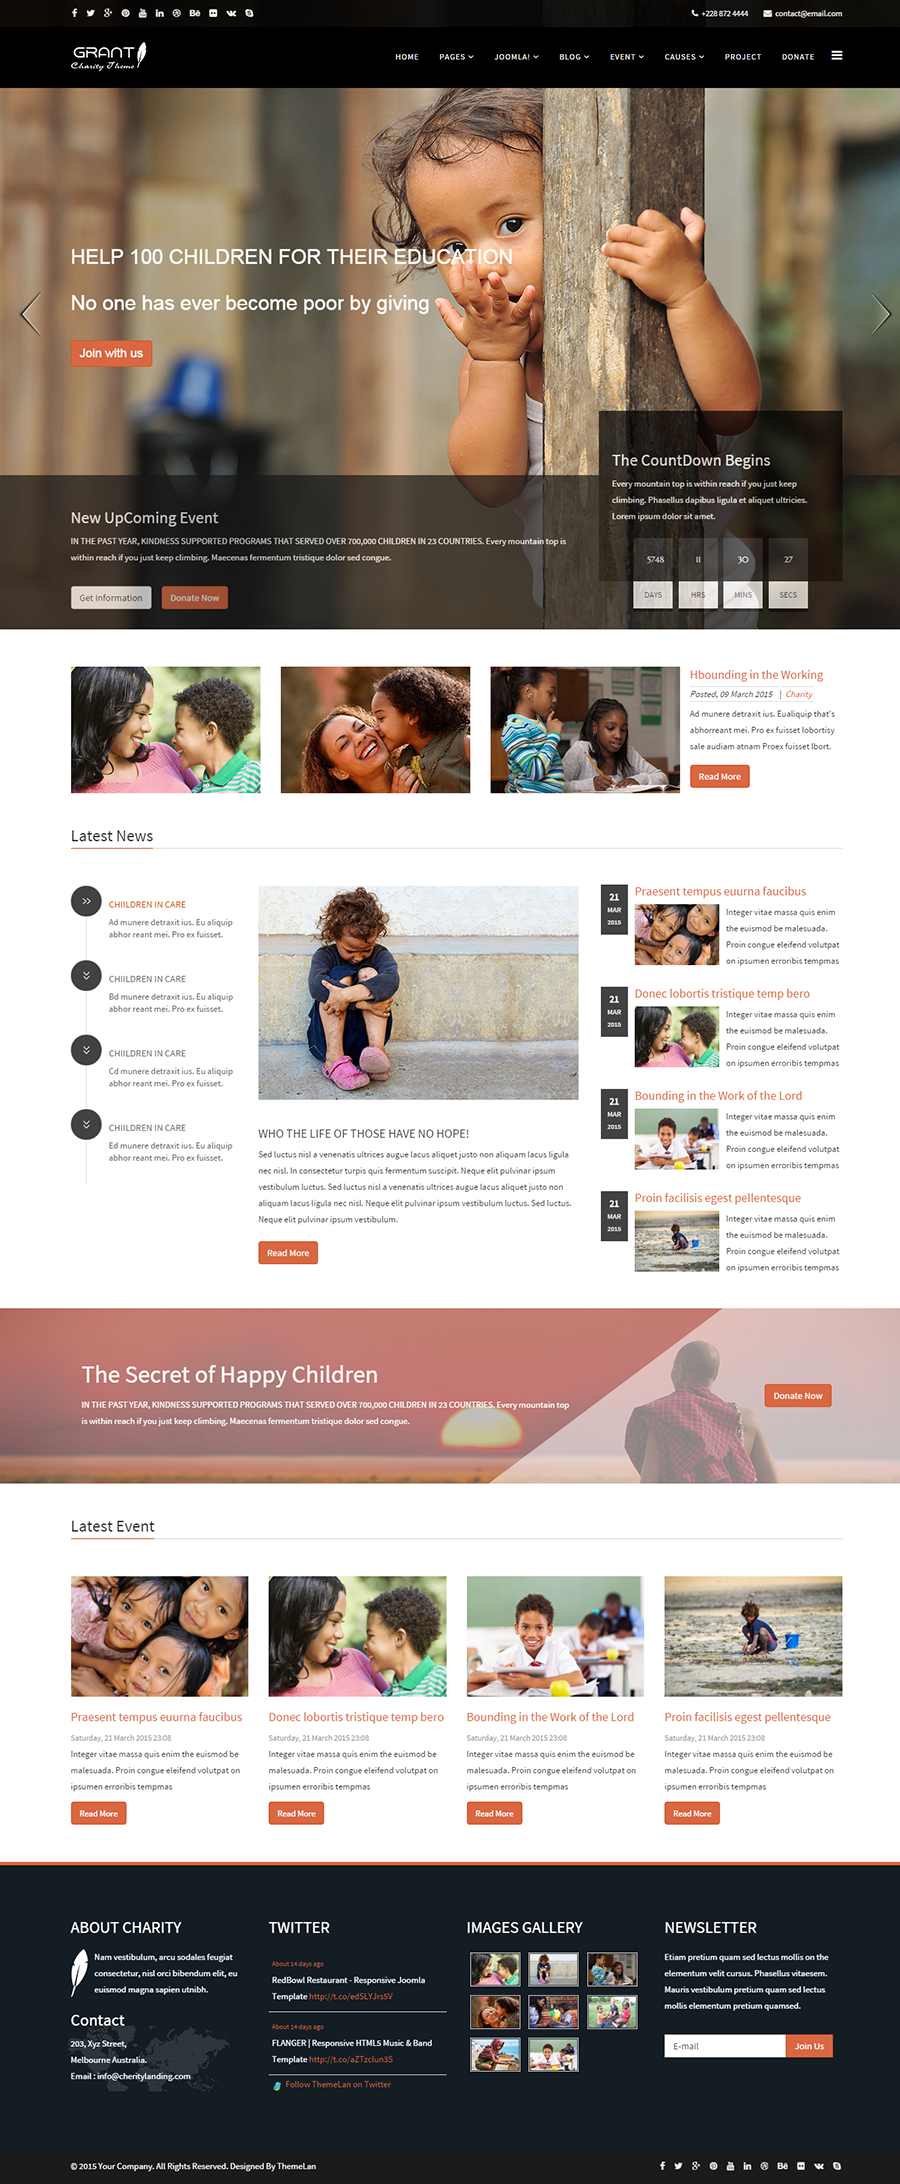 Grant - Charity / Nonprofit / NGO HTML5 Template | Template